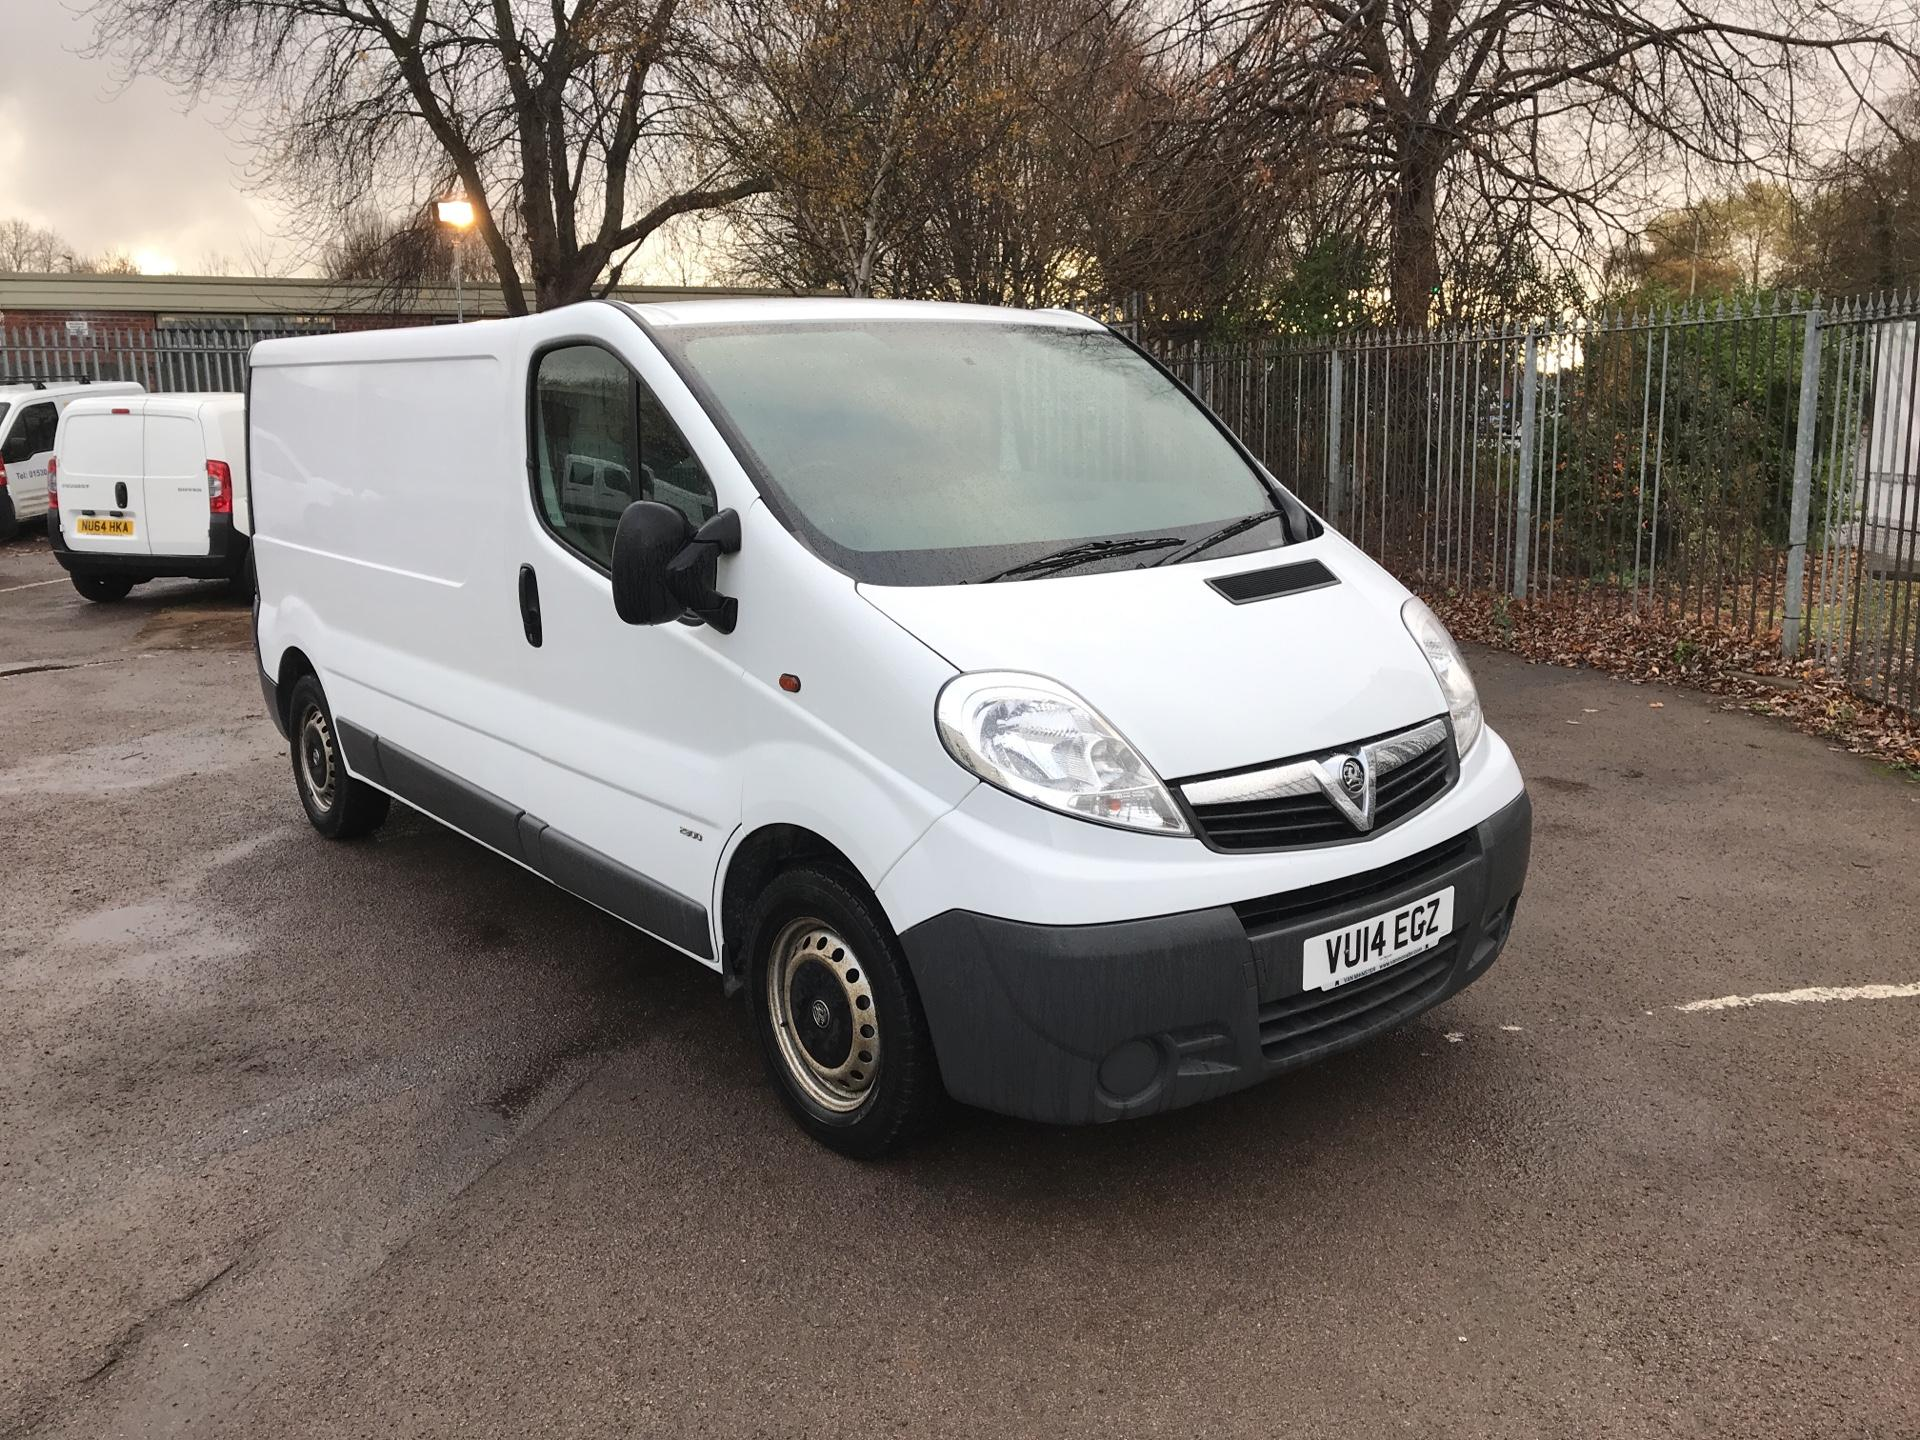 2014 Vauxhall Vivaro 2.0Cdti [115Ps] Van 2.9T Euro 5 *VALUE RANGE VEHICLE - CONDITION REFLECTED IN PRICE* (VU14EGZ)